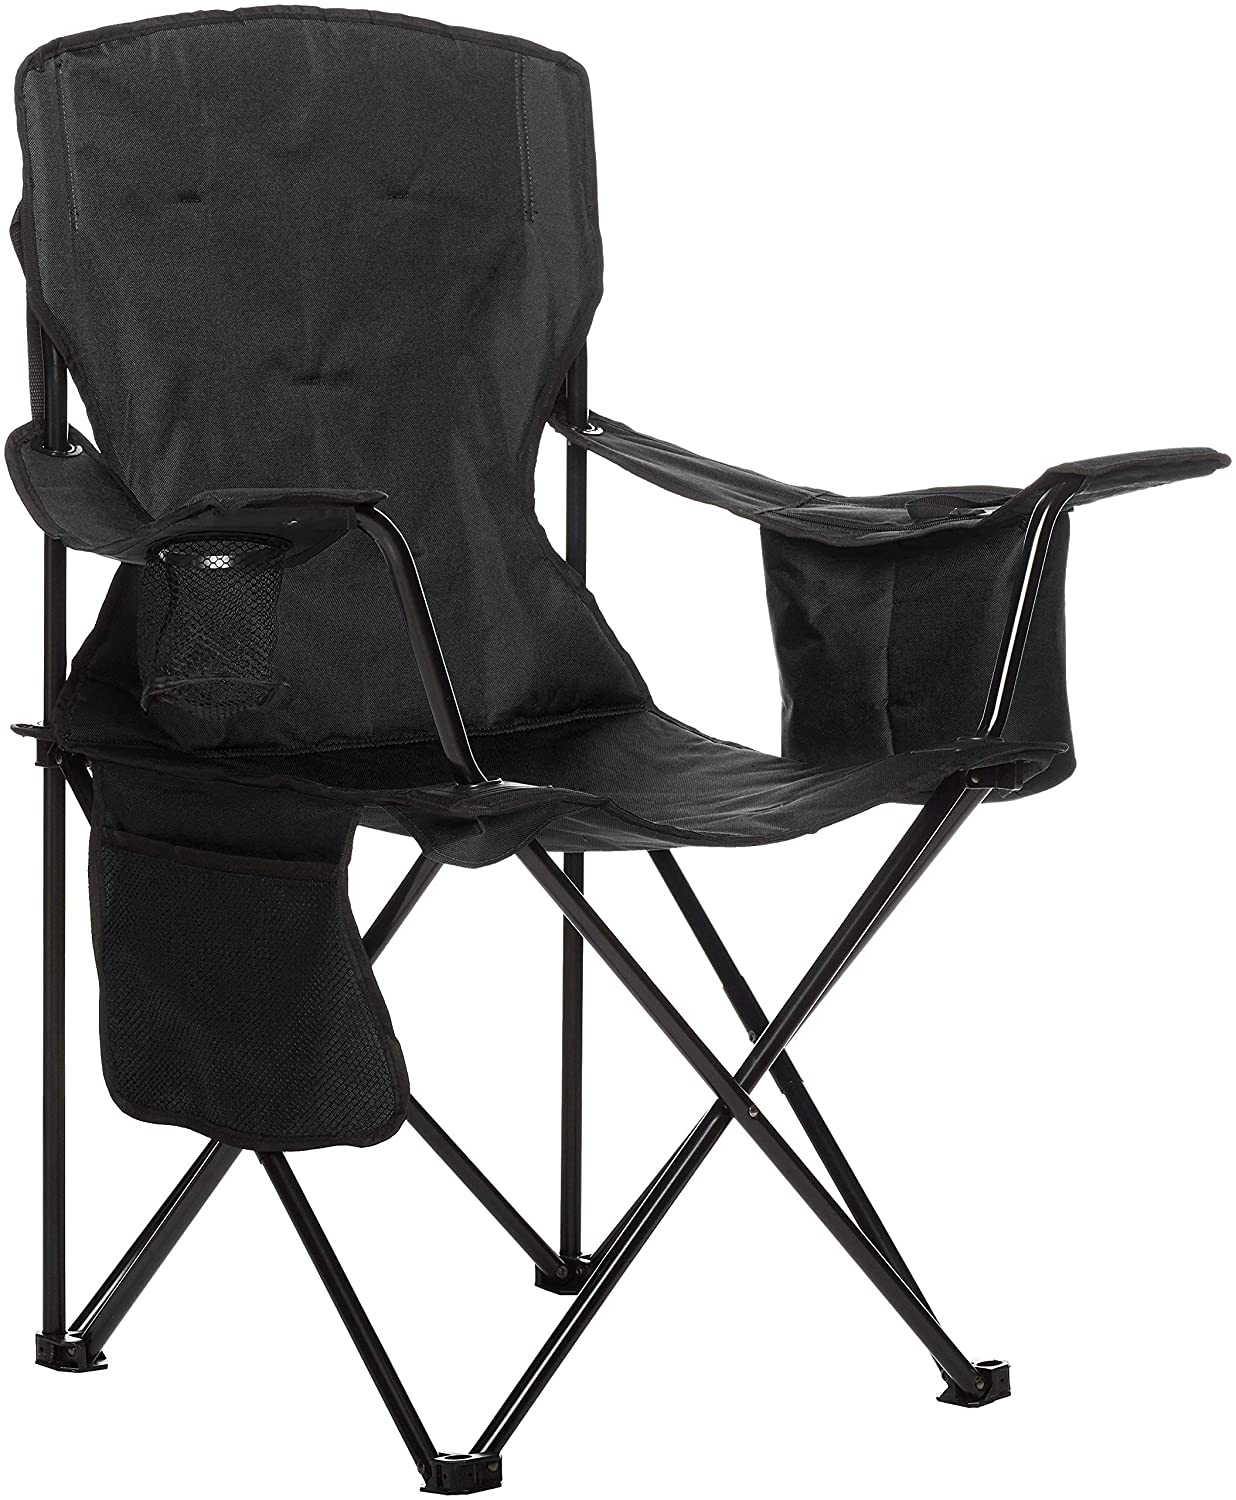 AmazonBasics Camping Chair with Cooler, Black Padded Renewed